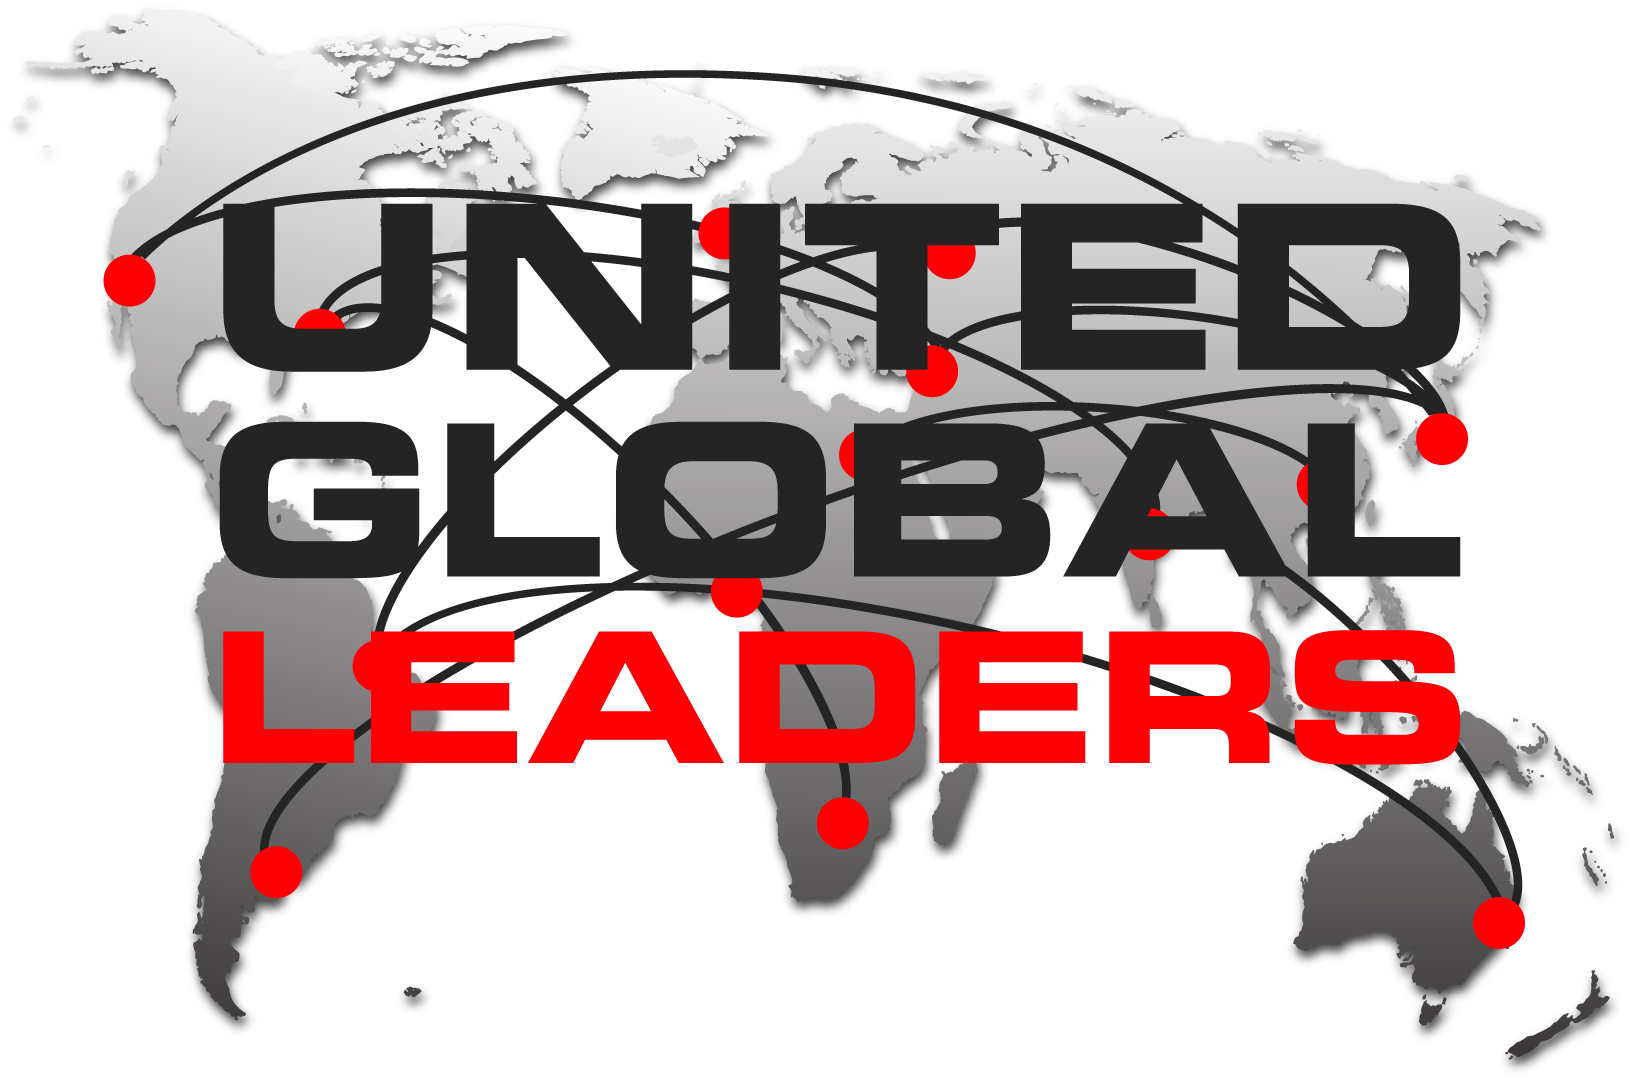 United Global Leaders